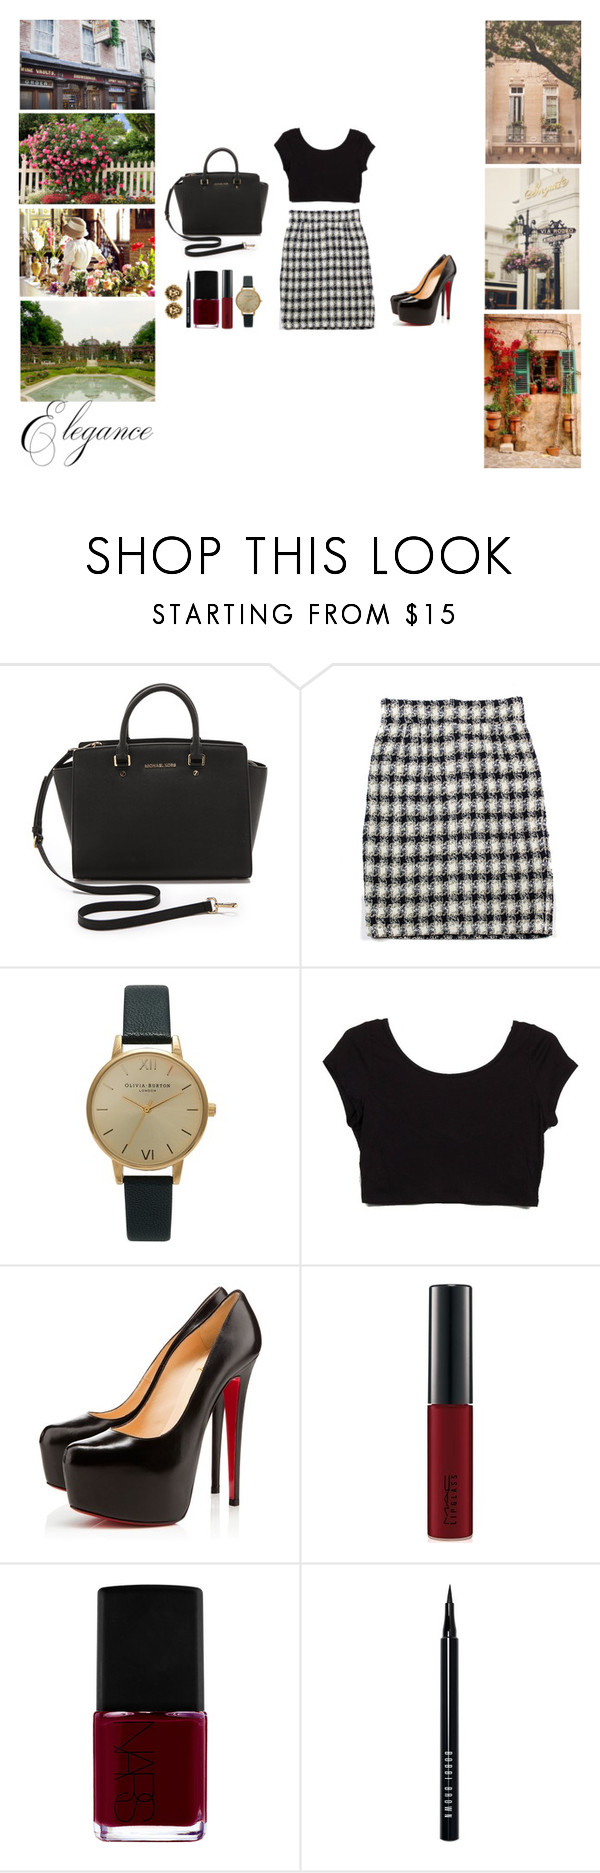 """Spring day"" by fashionphilosophies ❤ liked on Polyvore featuring MICHAEL Michael Kors, Chanel, Olivia Burton, Christian Louboutin, MAC Cosmetics, NARS Cosmetics and Bobbi Brown Cosmetics"